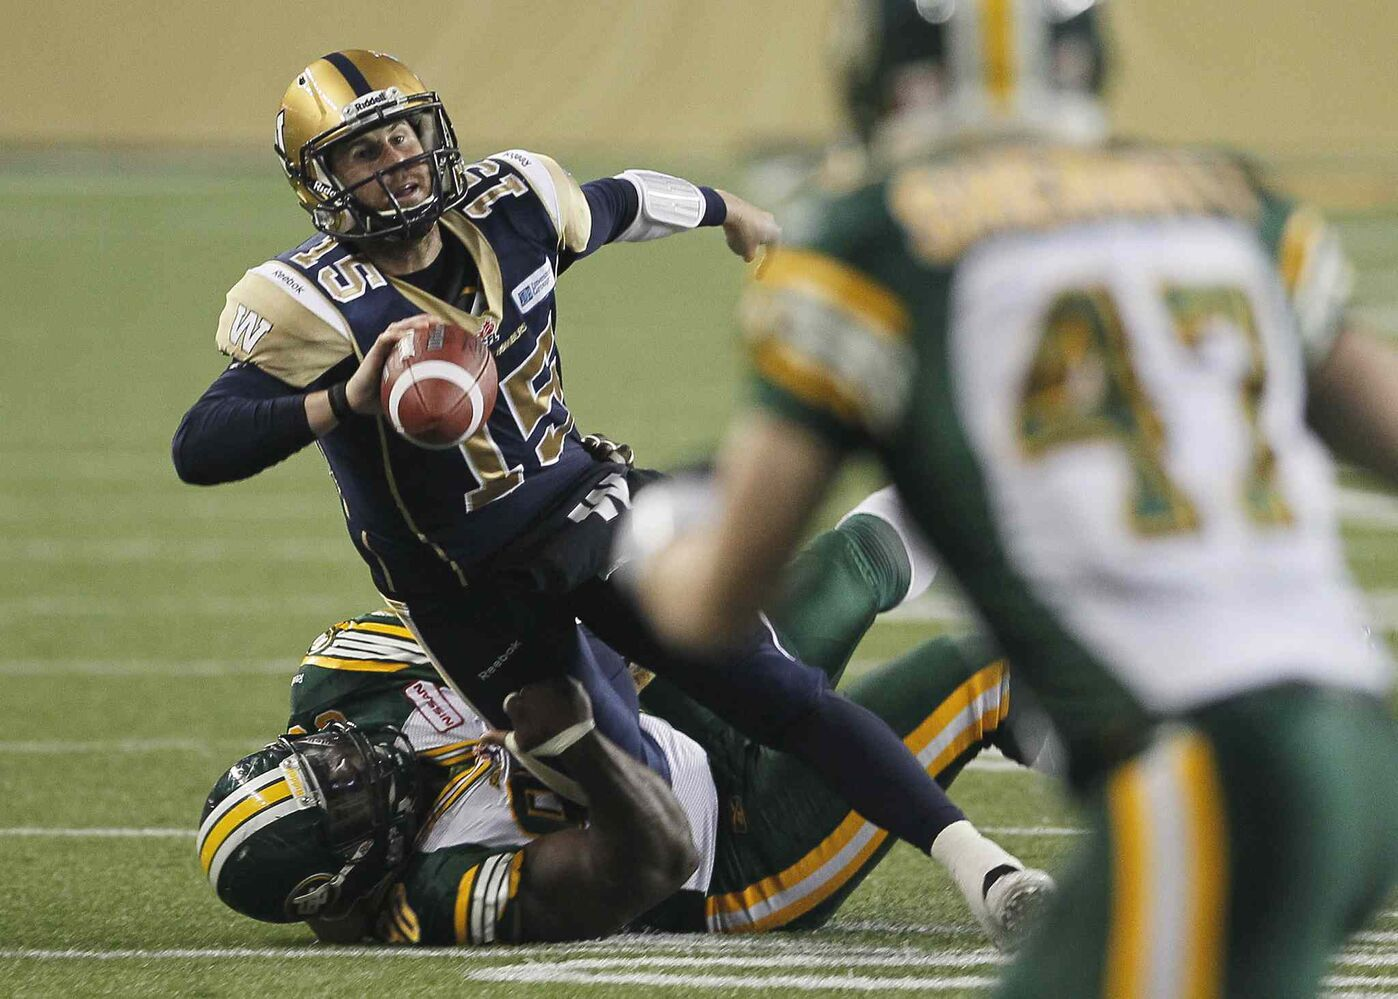 Winnipeg Blue Bombers' quarterback Max Hall (15) is sacked by Edmonton Eskimos' Almondo Sewell (90). (John Woods / The Canadian Press)